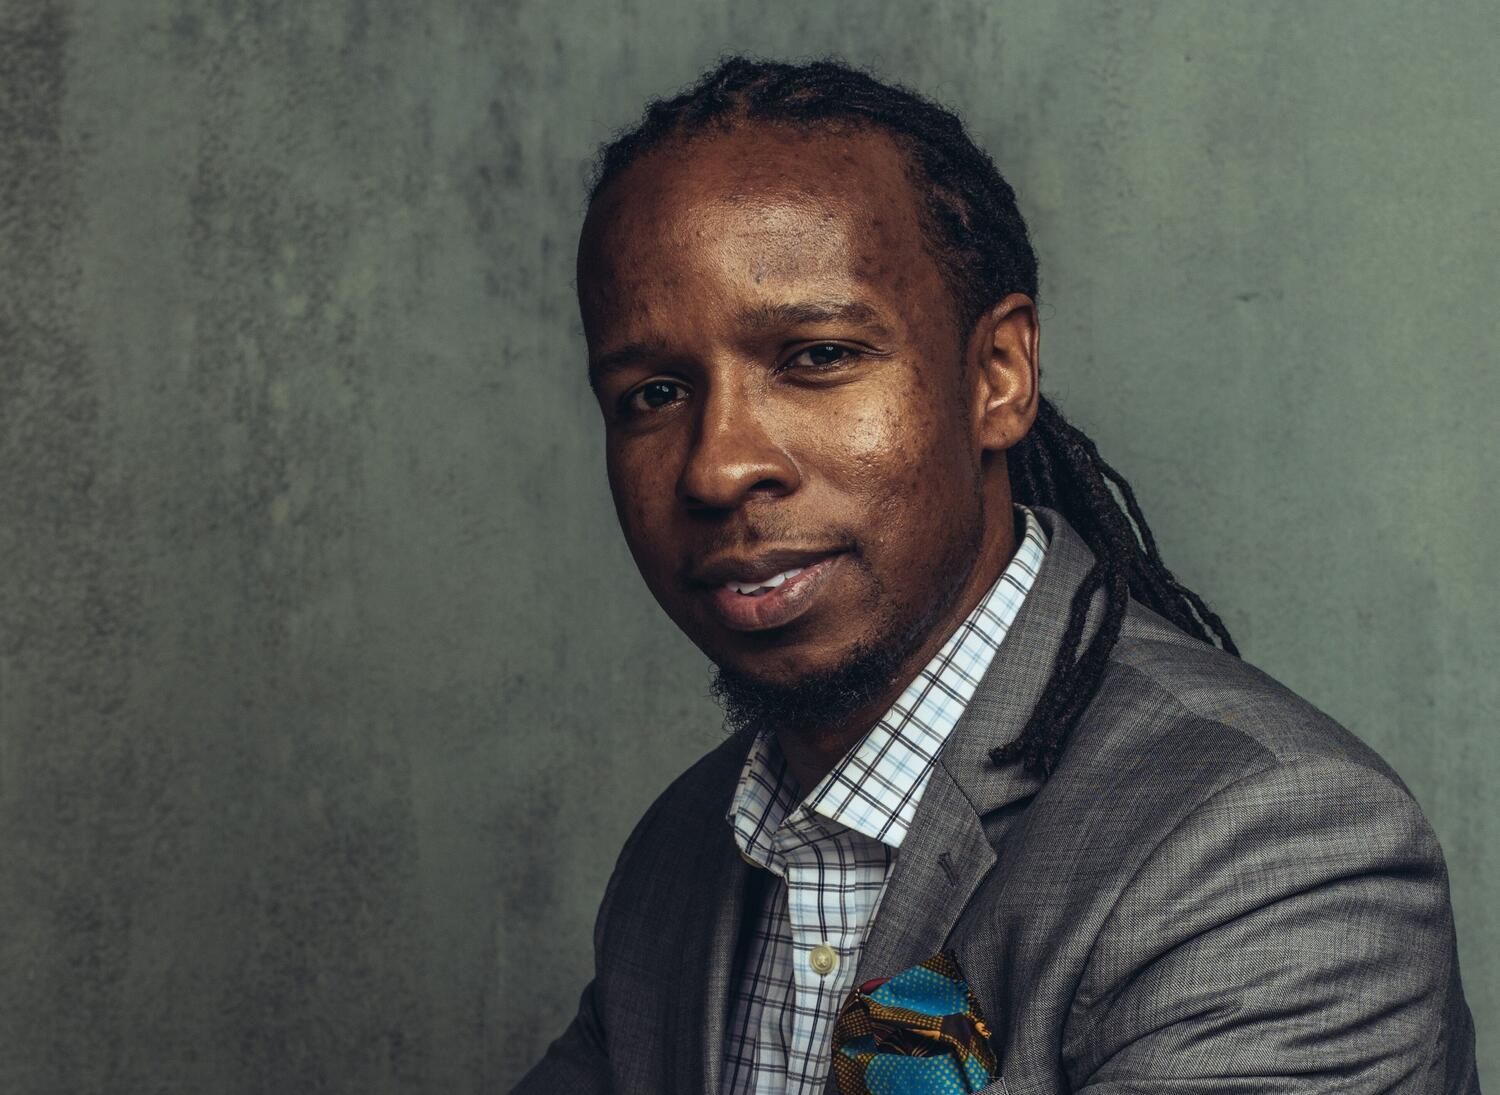 Dr. Ibram X. Kendi on Building Anti-racist Workplaces